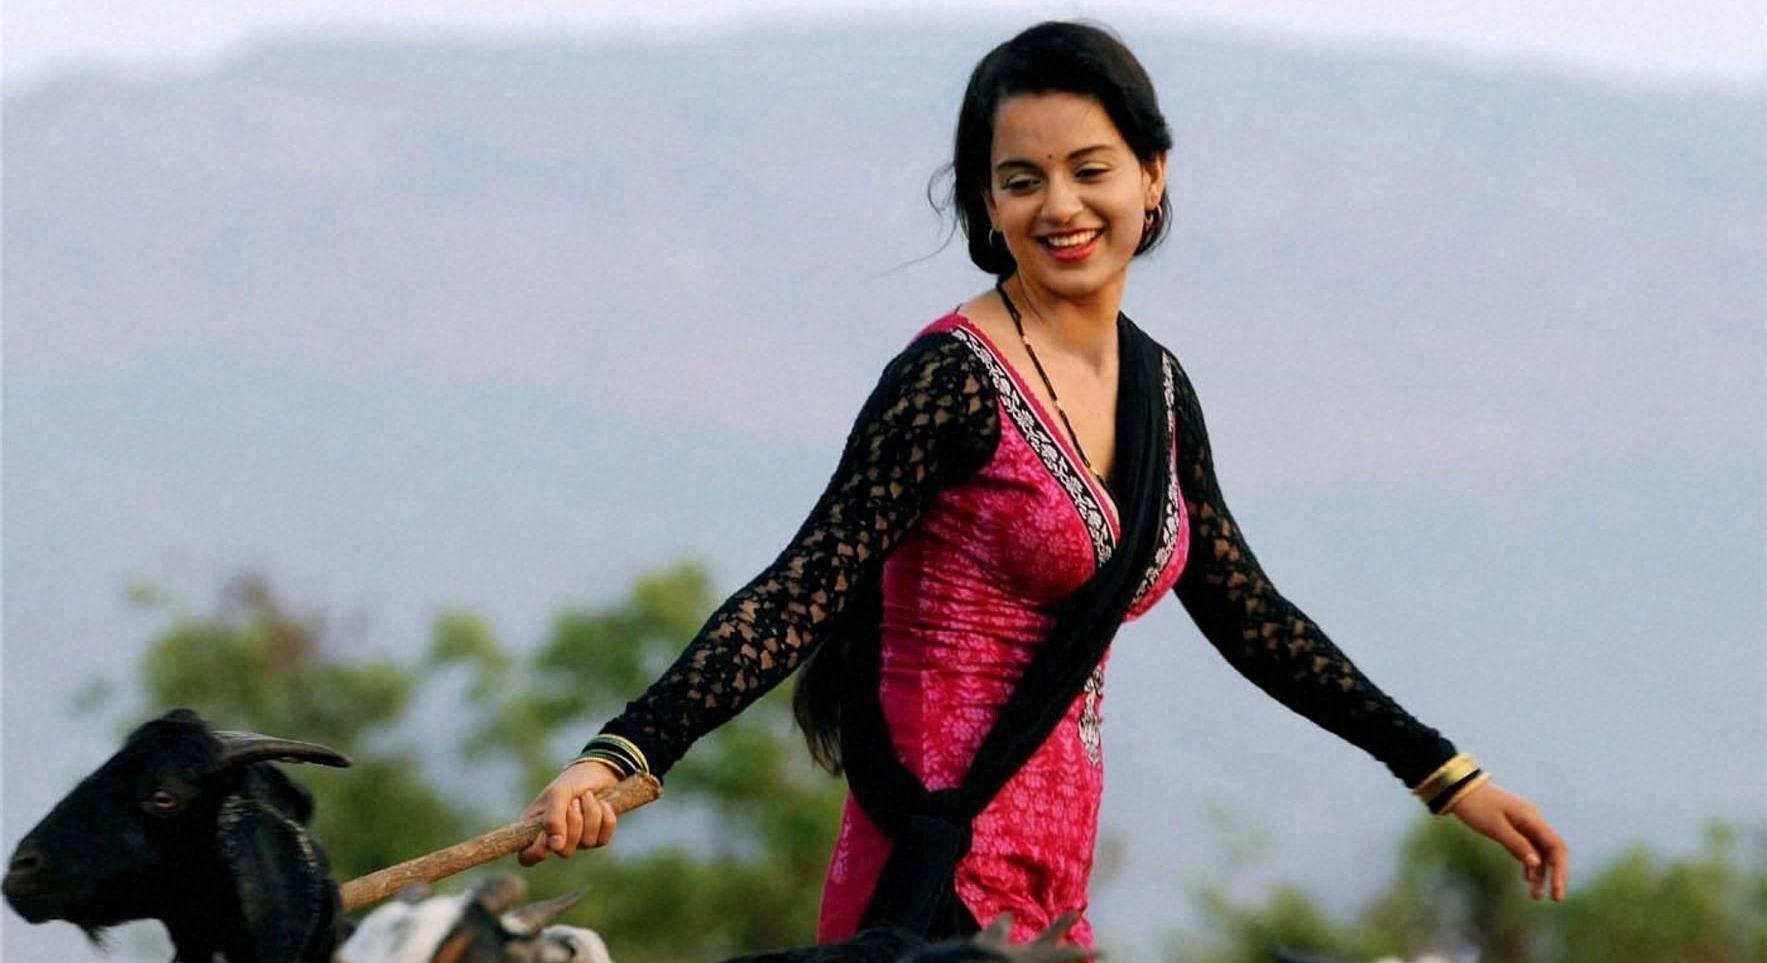 lovely kangana ranaut smiling with goat deskop background mobile hd images free